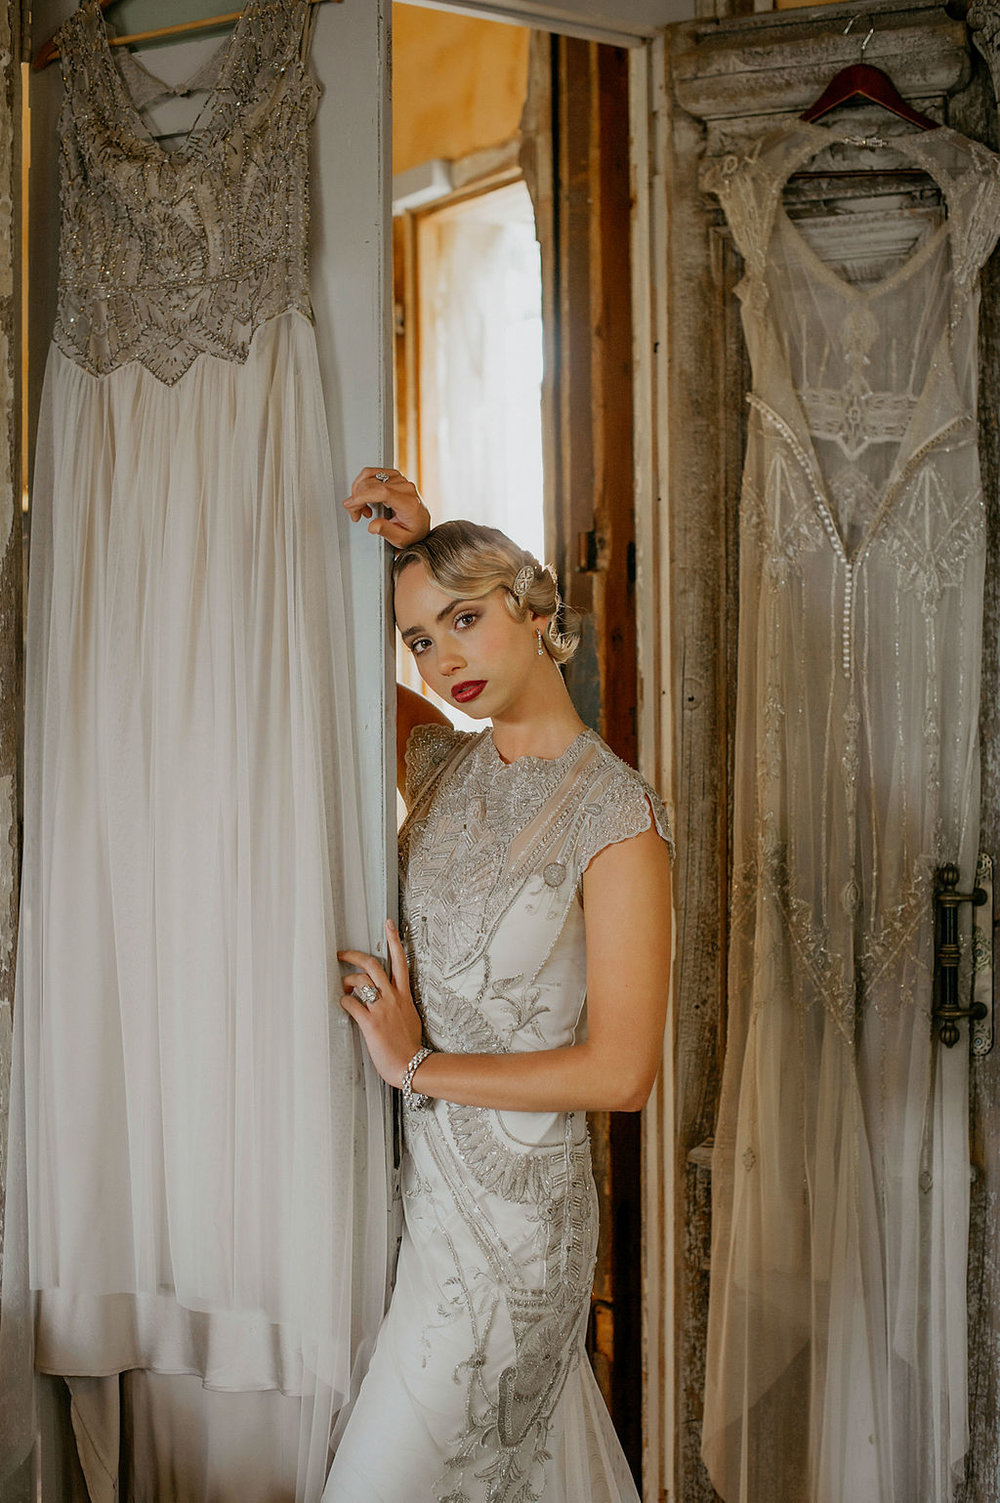 Polly amongst Gwendolynne Wedding Dress  JessicaAbbyartdecoWEB-8639.jpg